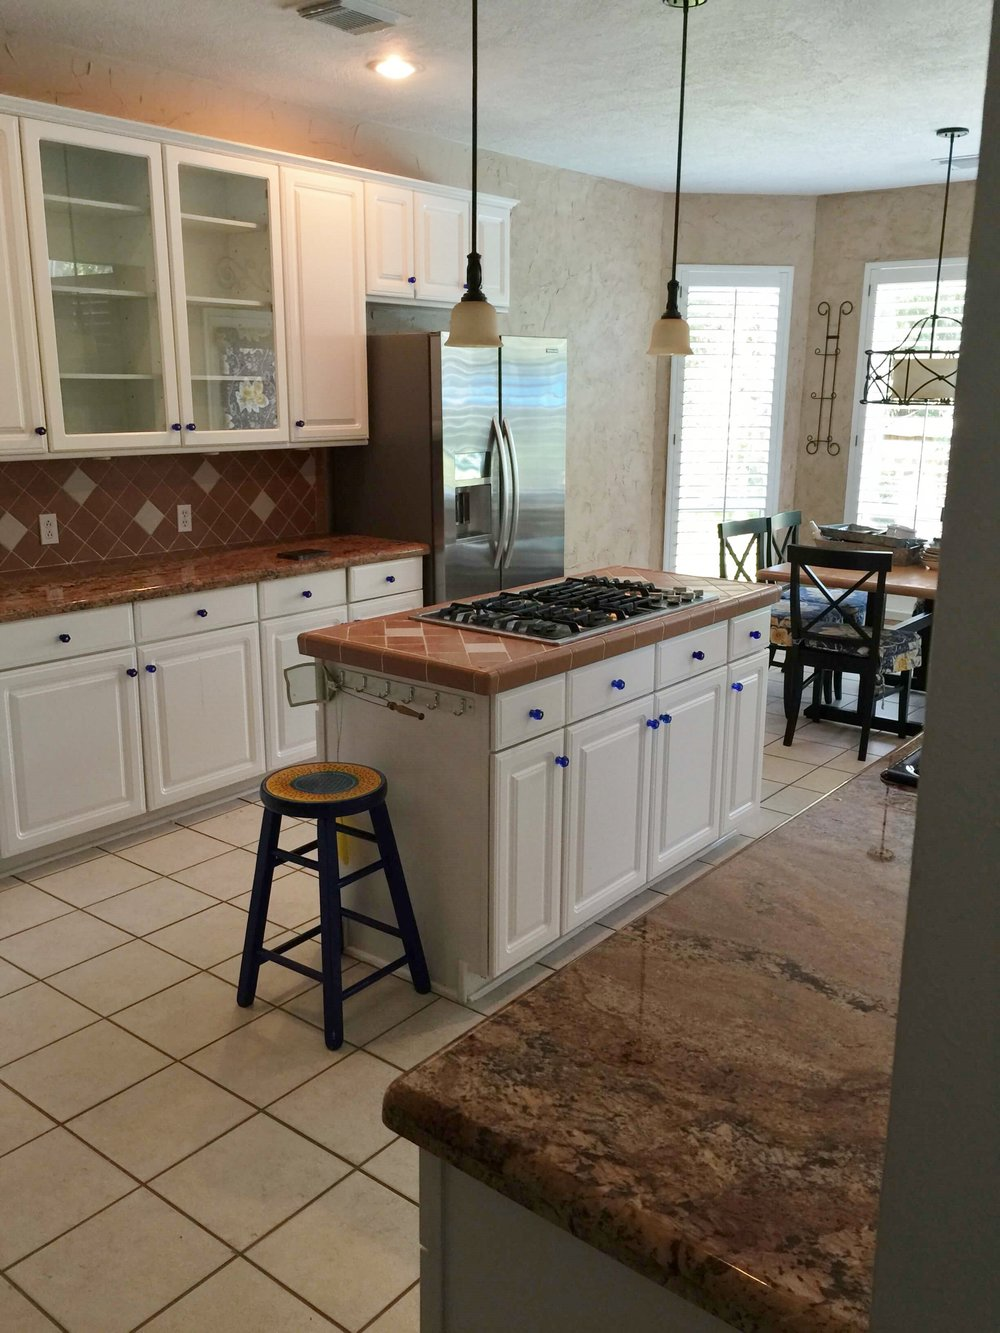 Remodel My Kitchen Before And After My Own Kitchen Remodel Reveal Designed